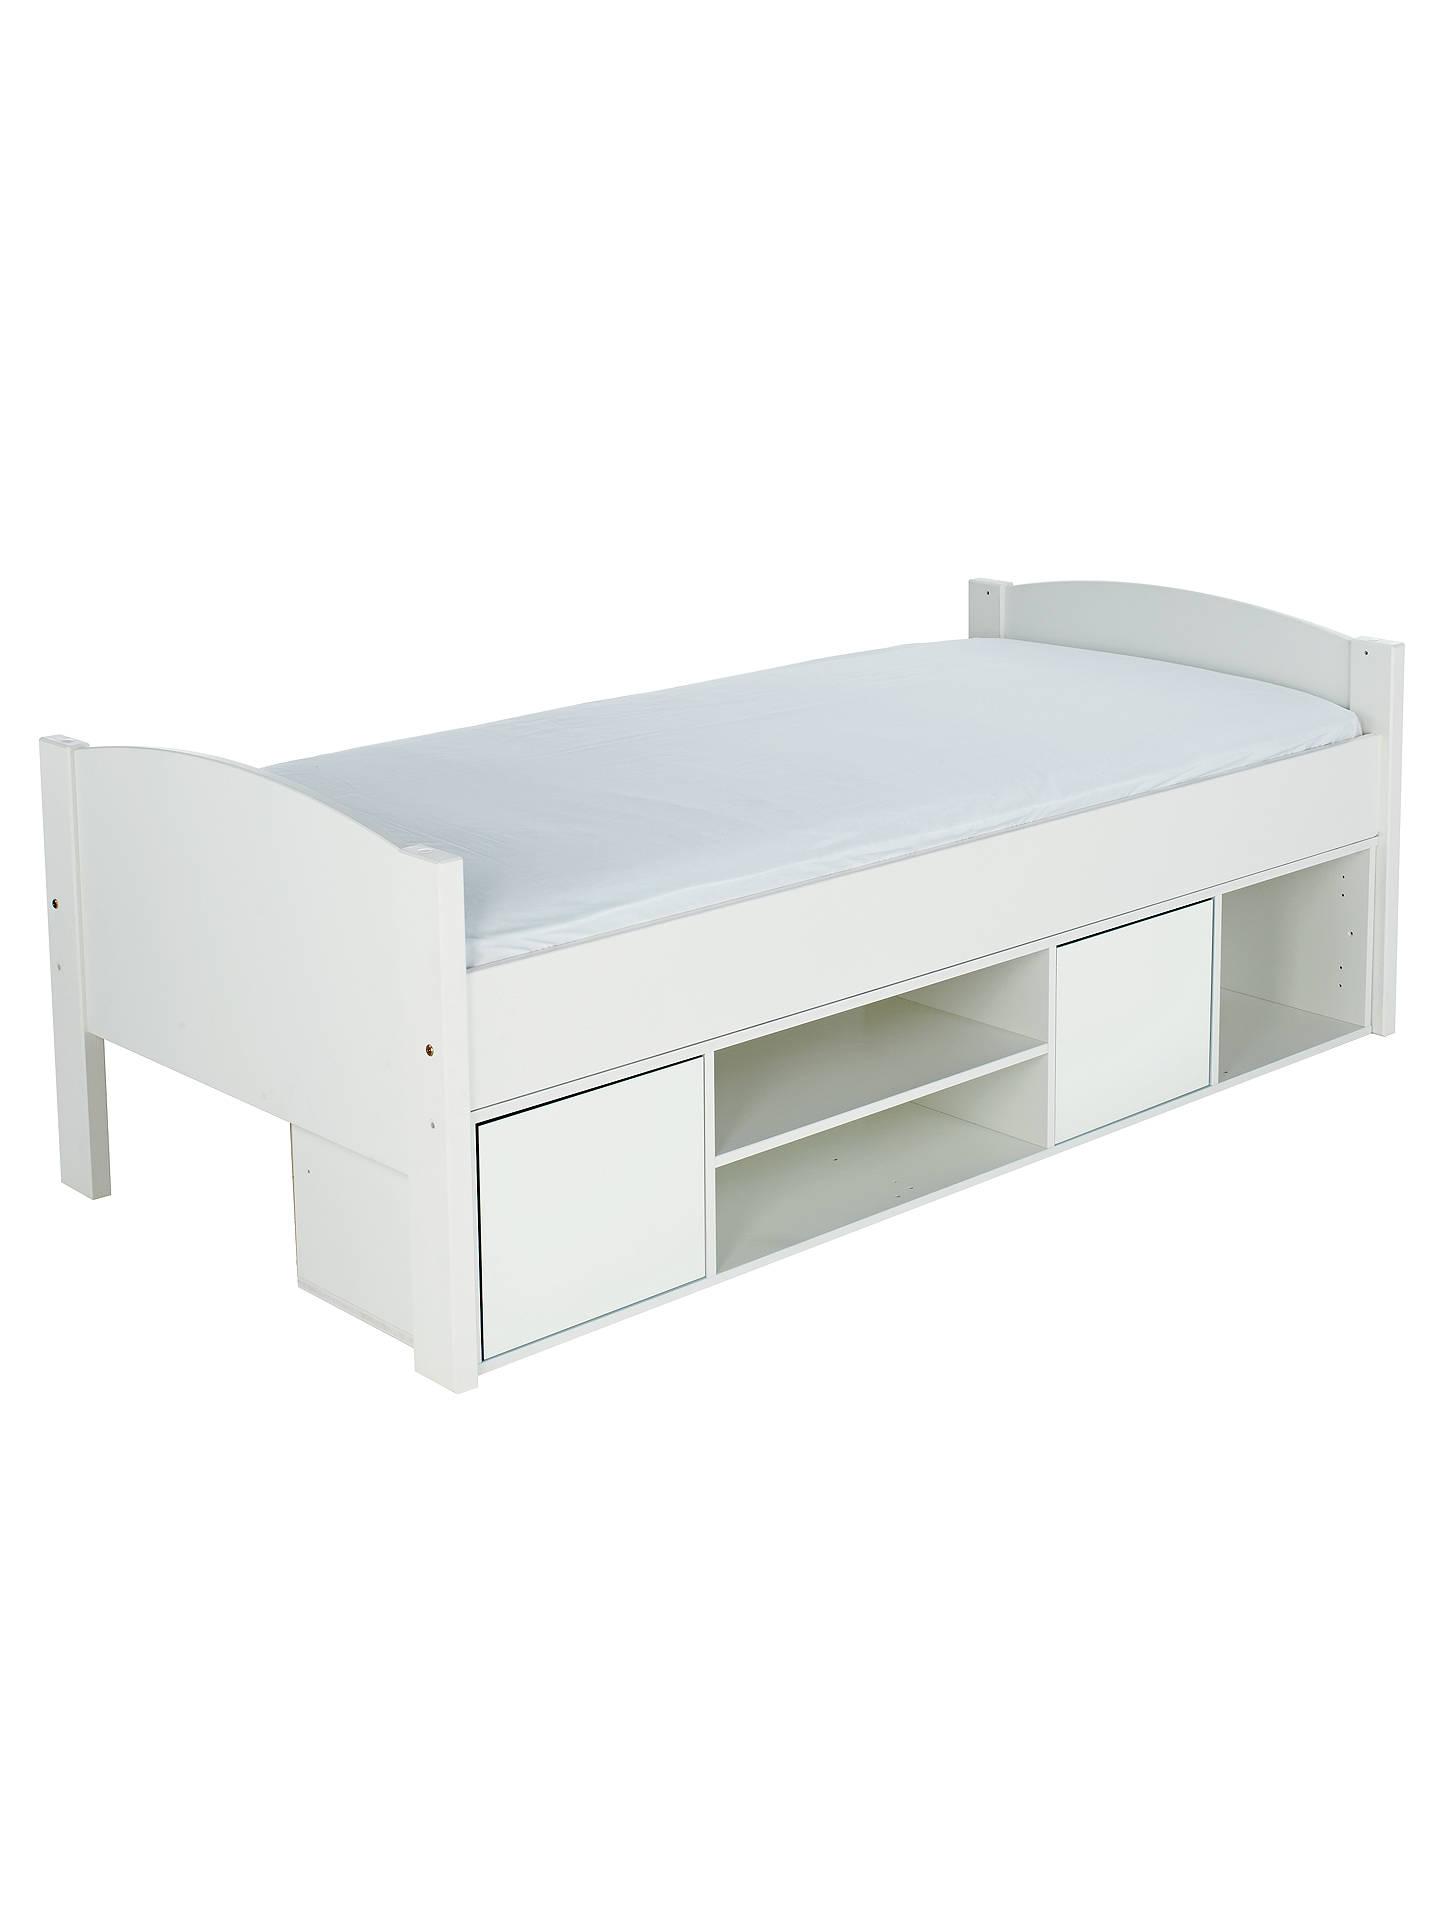 Stompa Uno S Plus Storage Cabin Bed White Online At Johnlewis